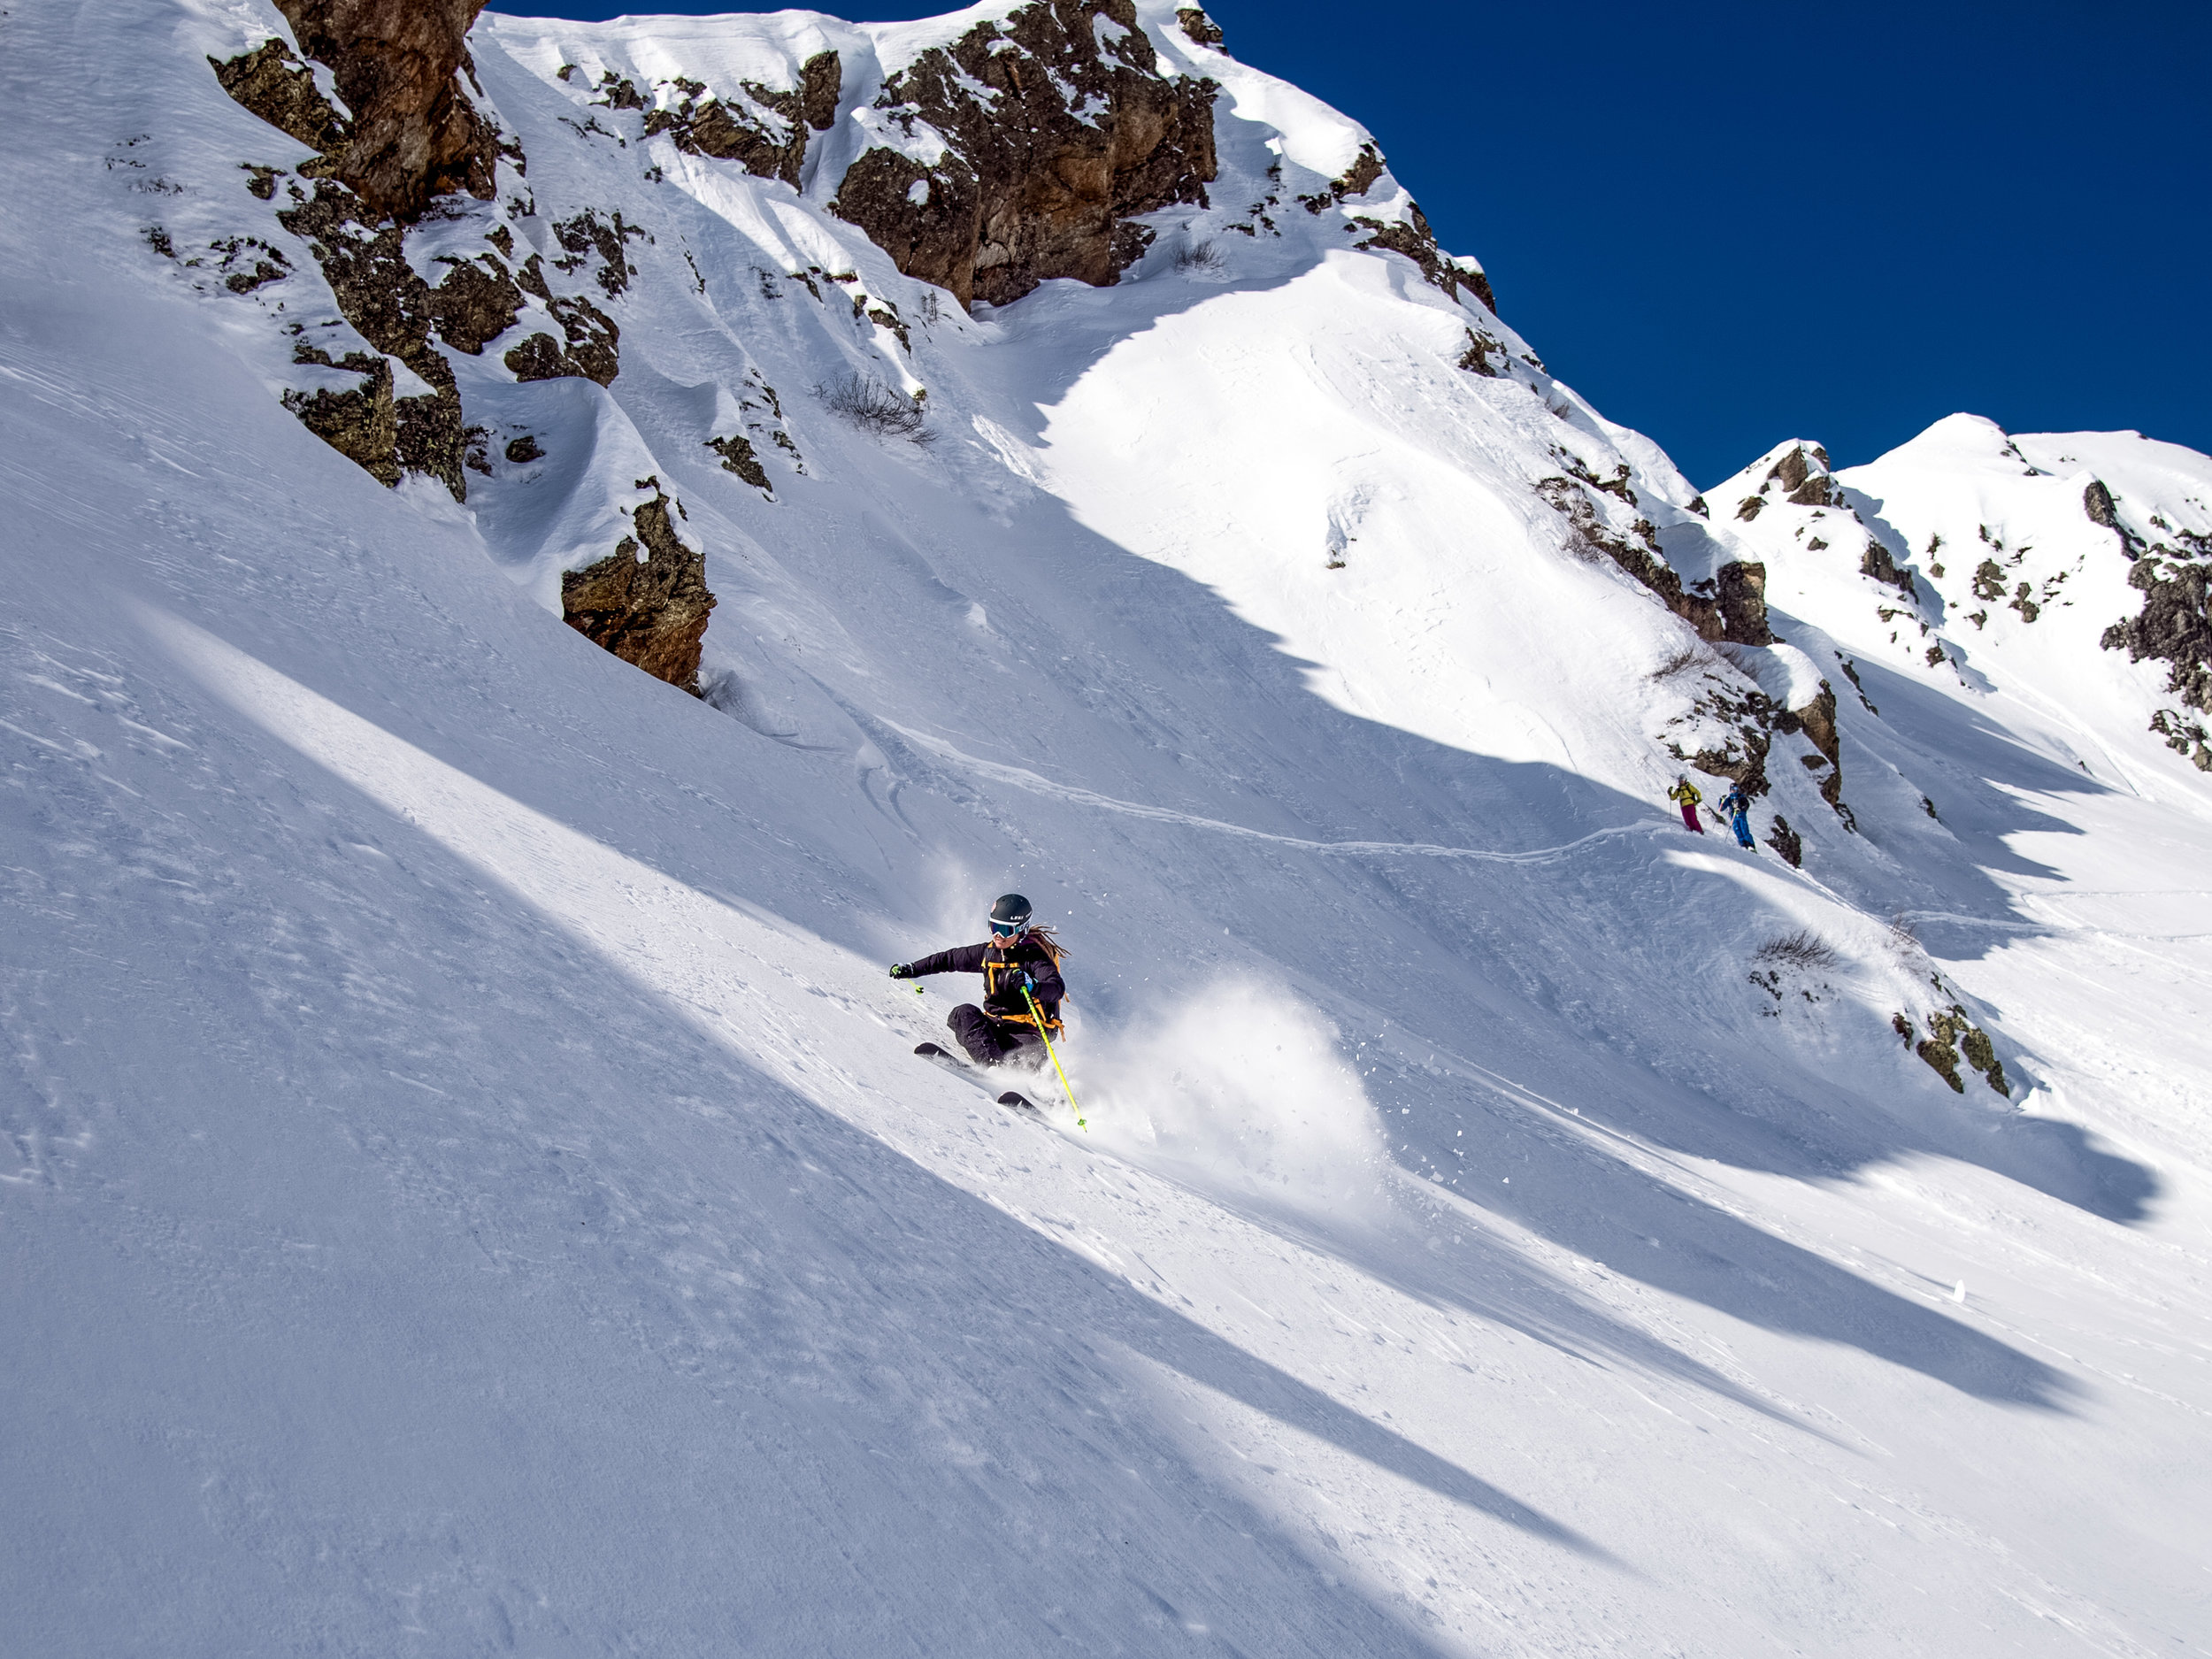 Whether skiing on slopes, touring, freeriding or mogul skiing, it should be fun and the movements should become perceptible. -